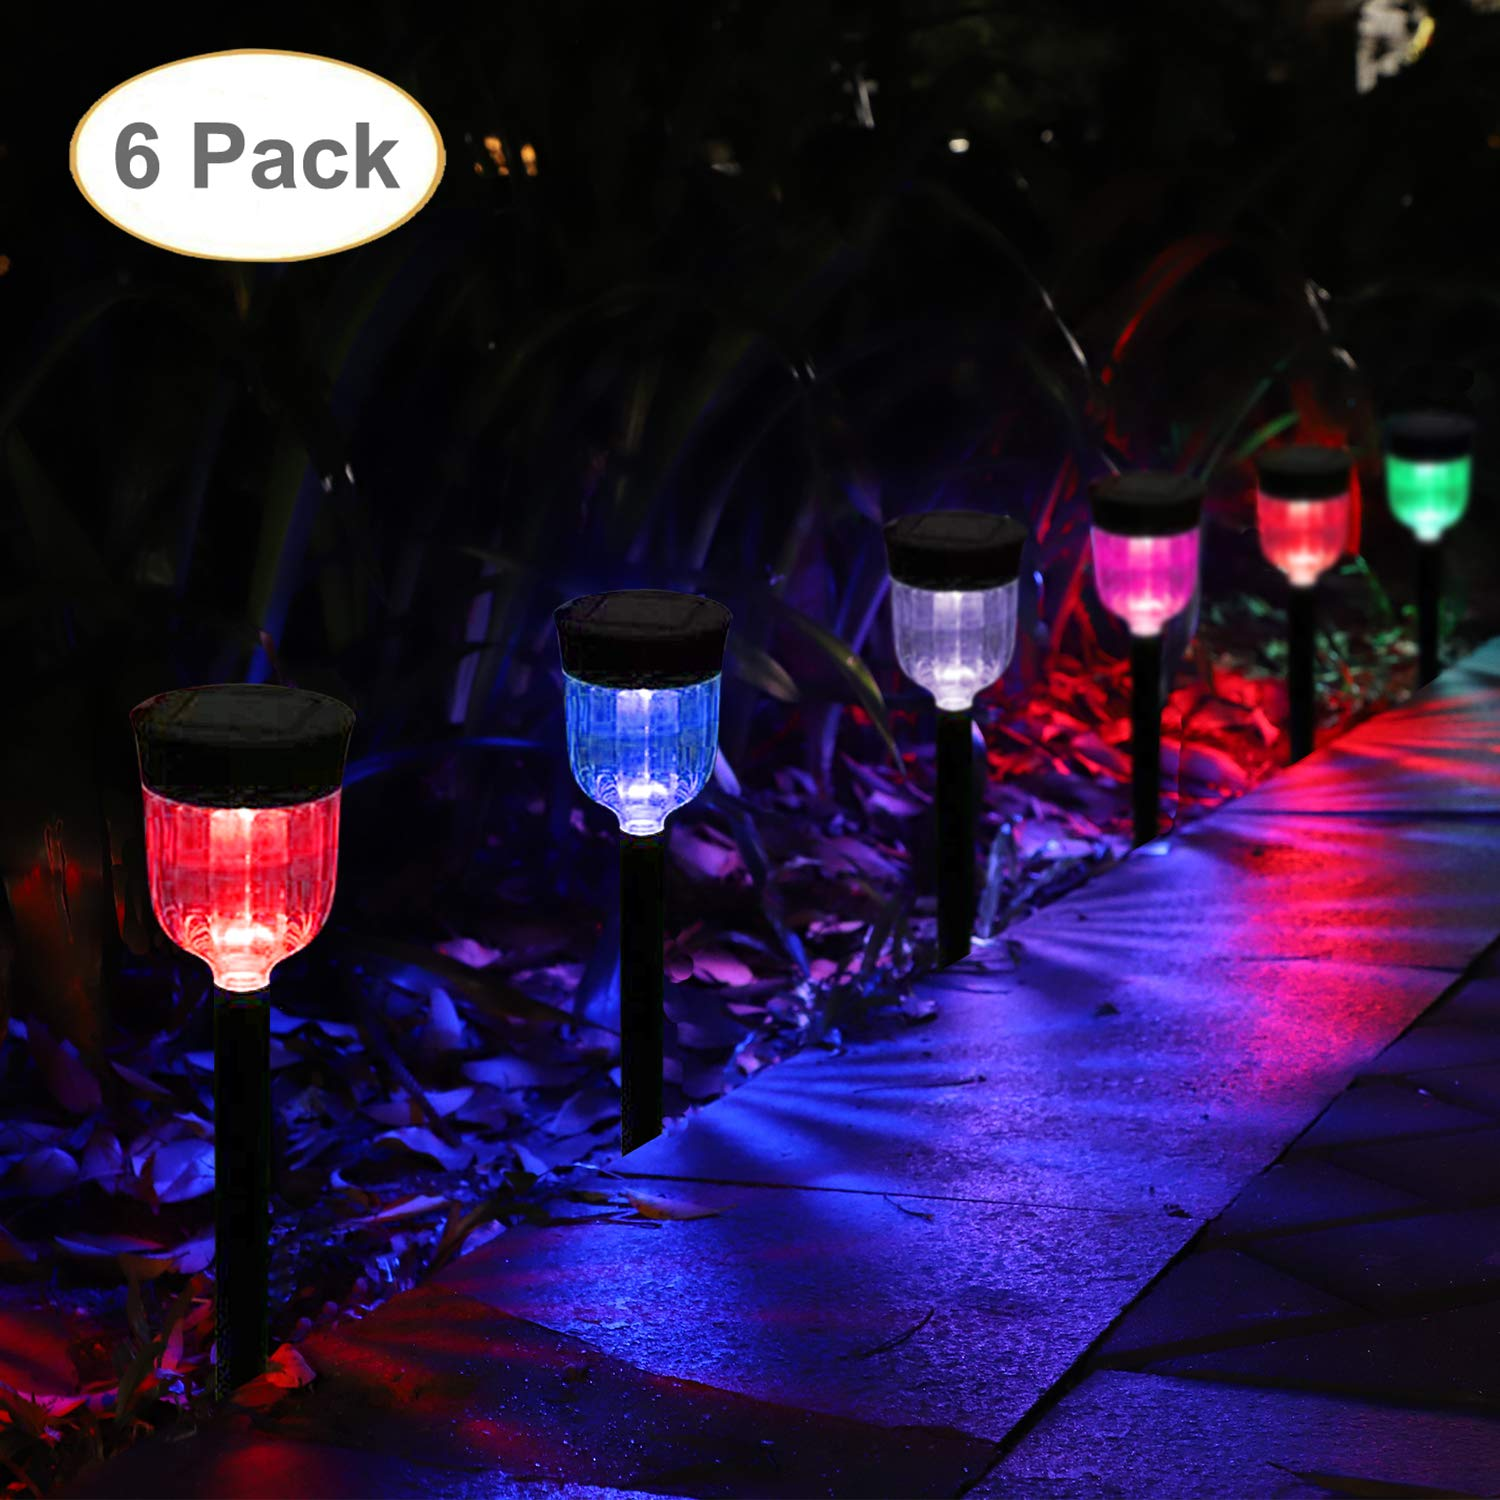 GELOO Solar Lights Outdoor, 6 Pack Color Changing Solar Pathway Lights  Outdoor Garden Lights Landscape Lighting Weatherproof Auto On/Off for Garden  Lawn ...